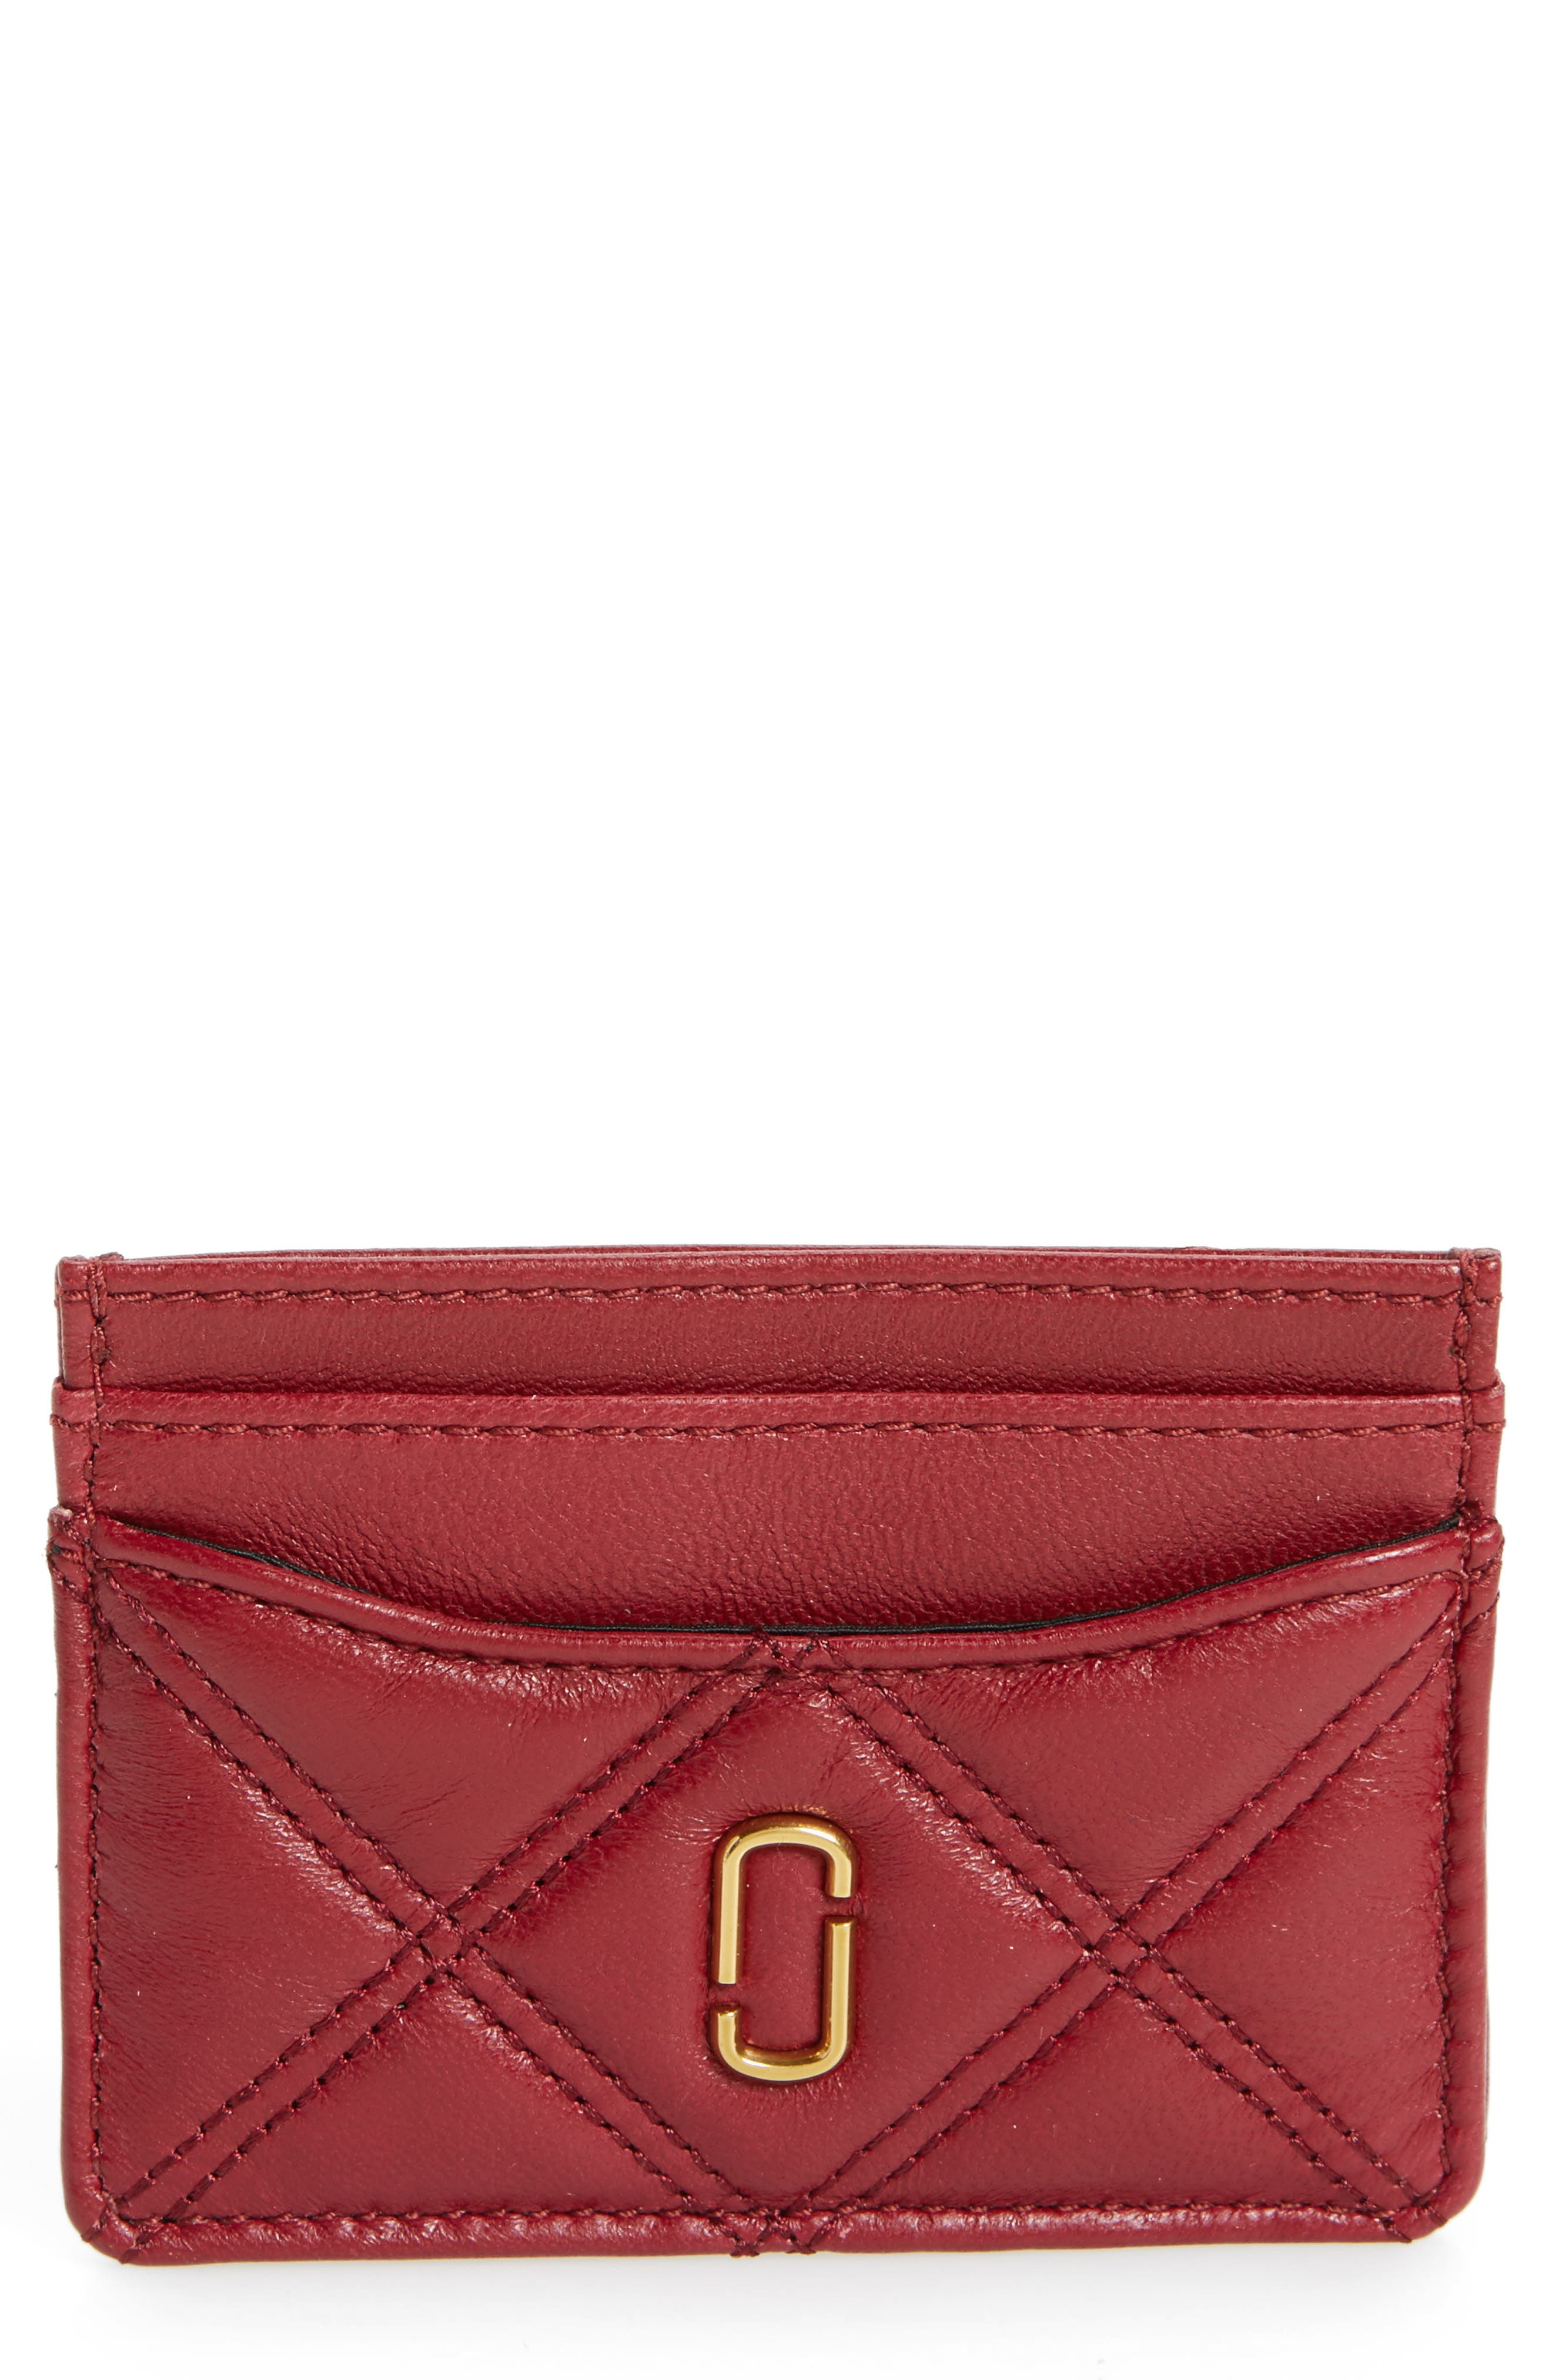 MARC JACOBS Quilted Leather Card Case